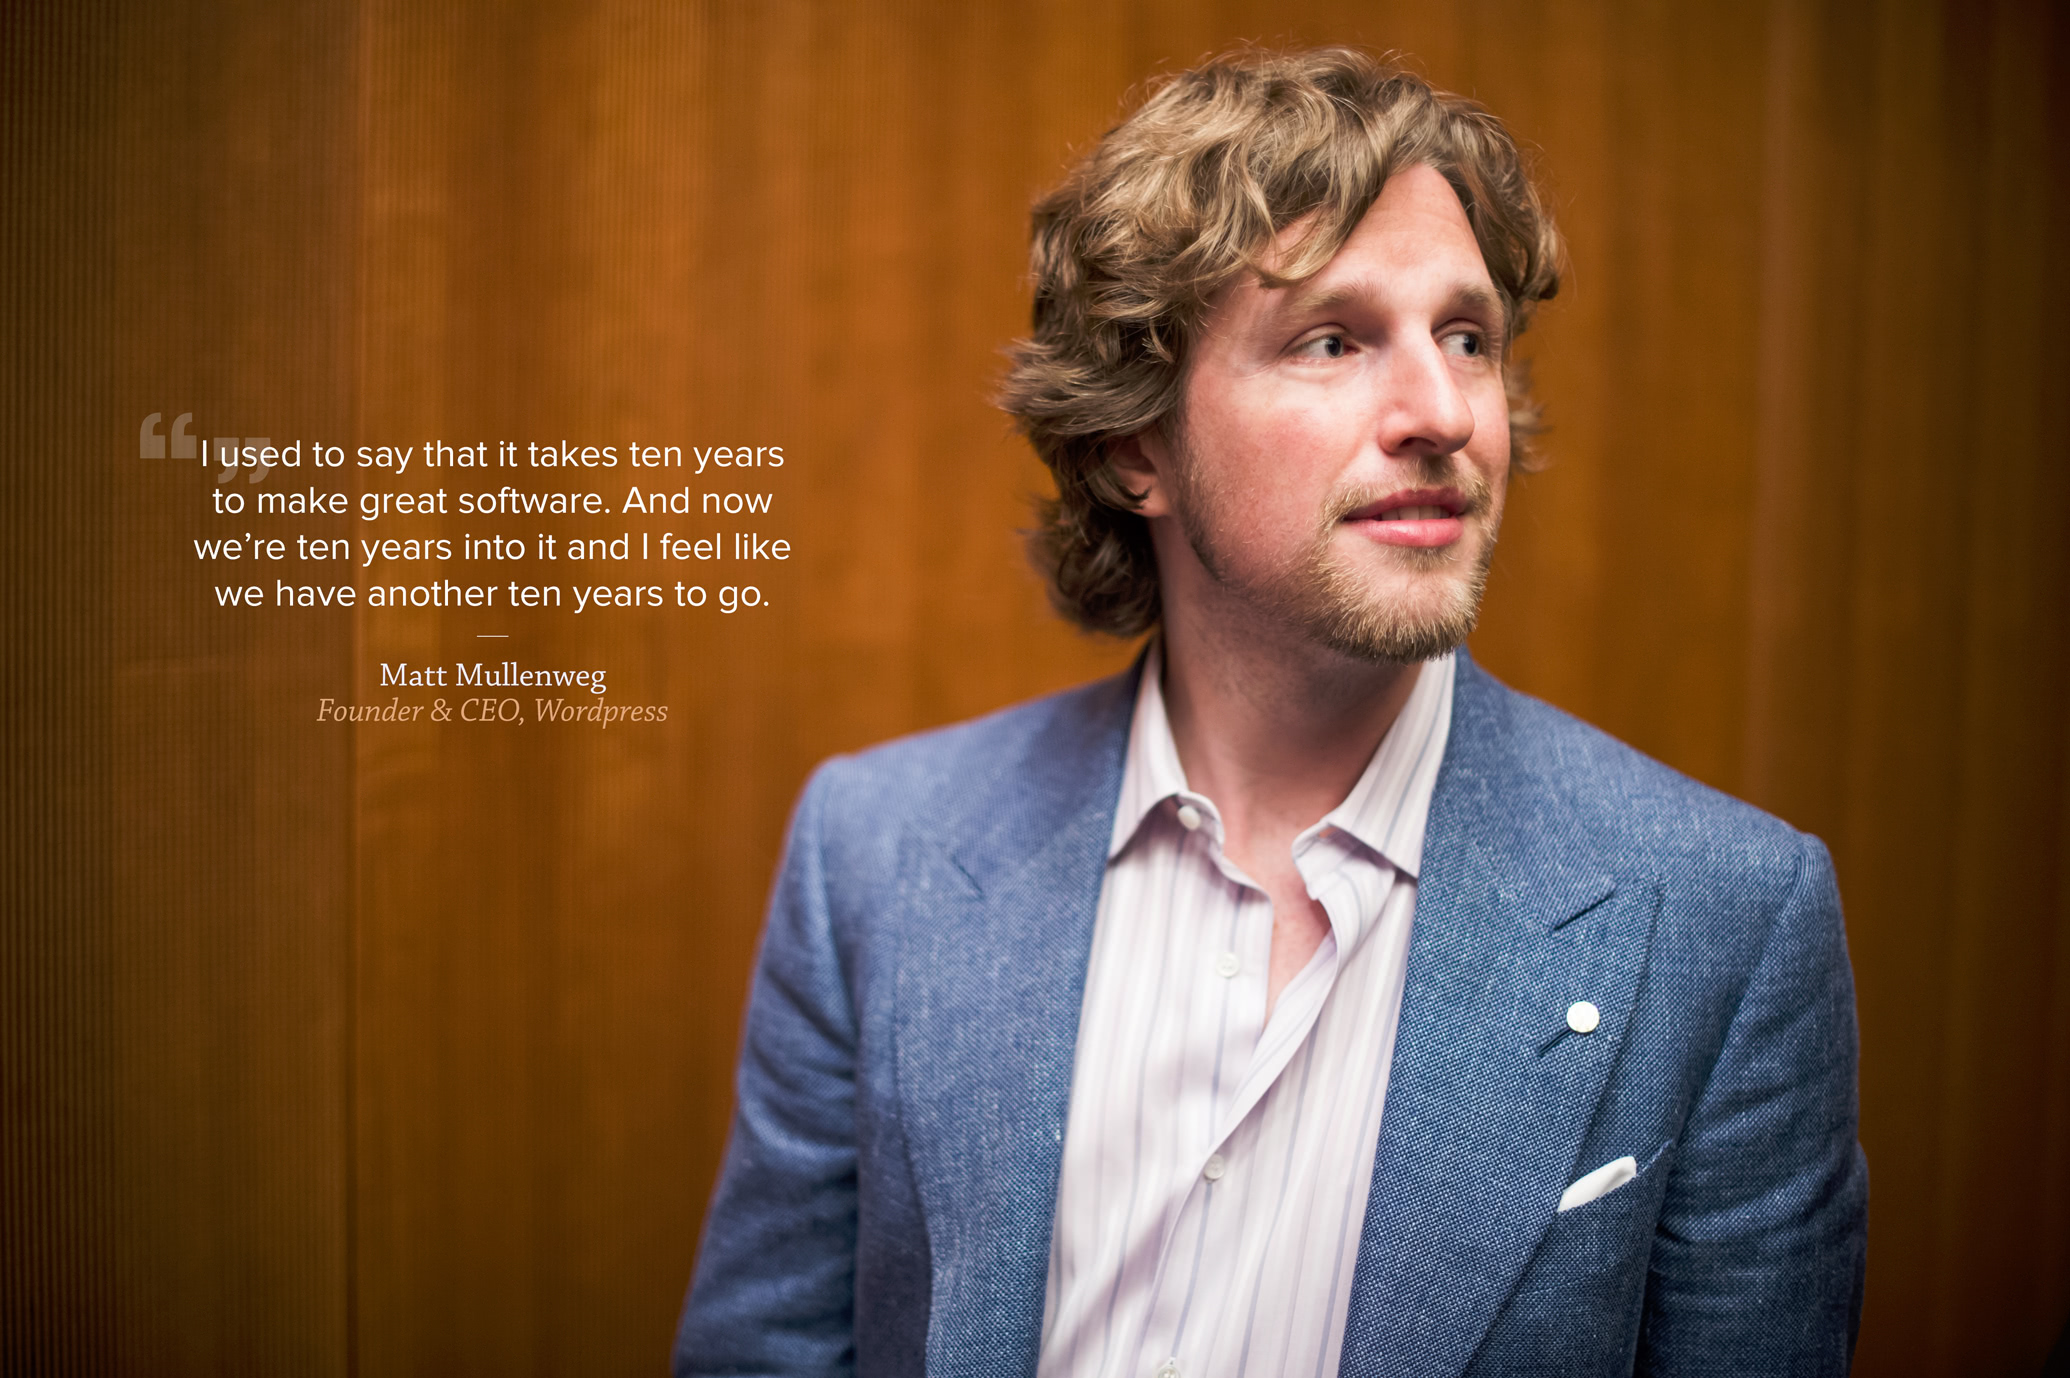 Quote from Matt Mullenweg, Founder and CEO of WordPress